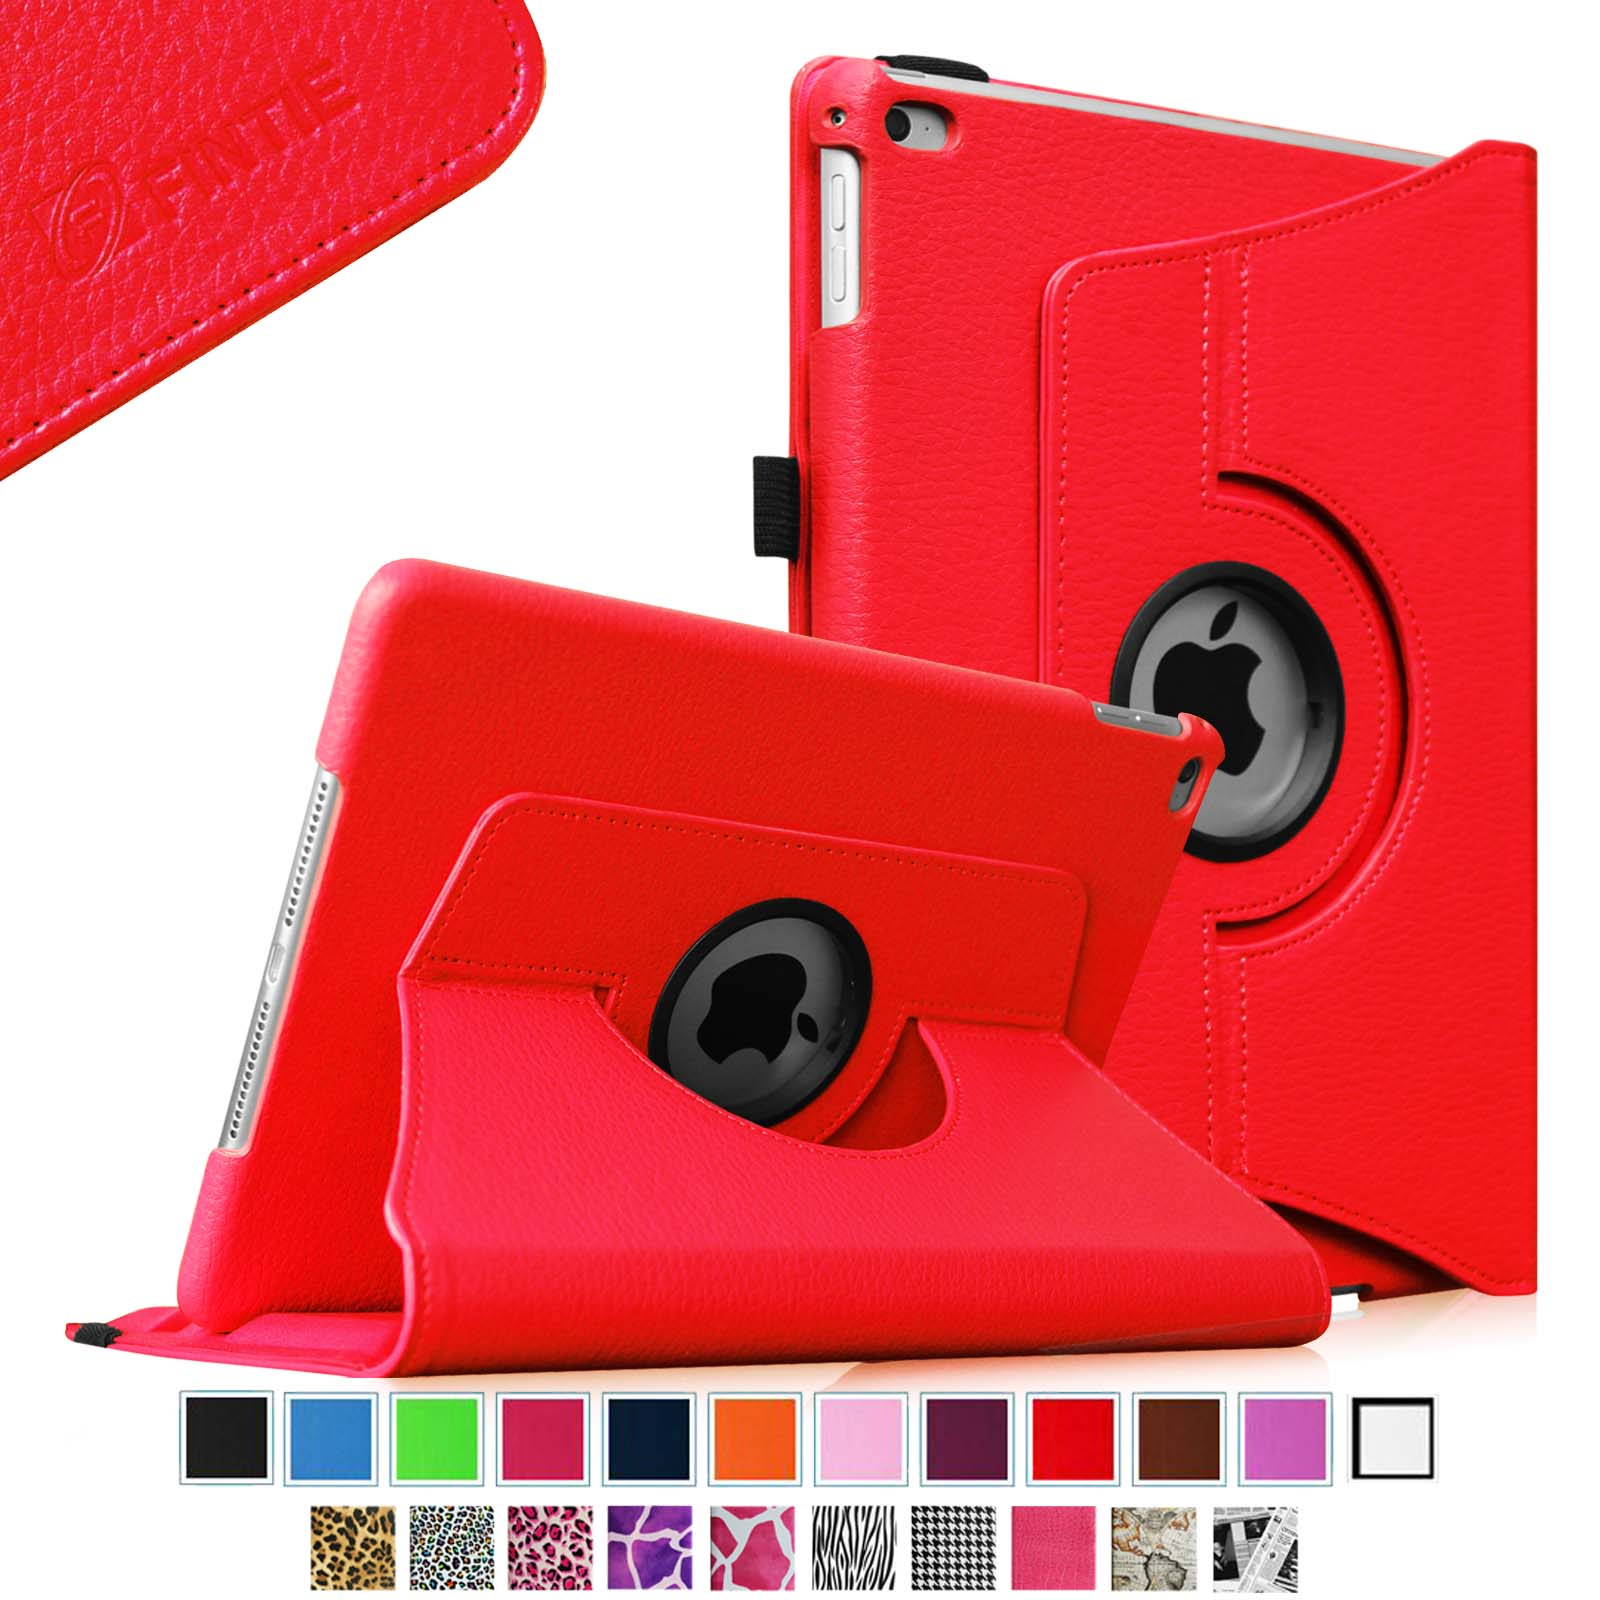 Fintie iPad Air 2 Multiple Angles Stand Case Cover with Auto Sleep / Wake Feature, Red